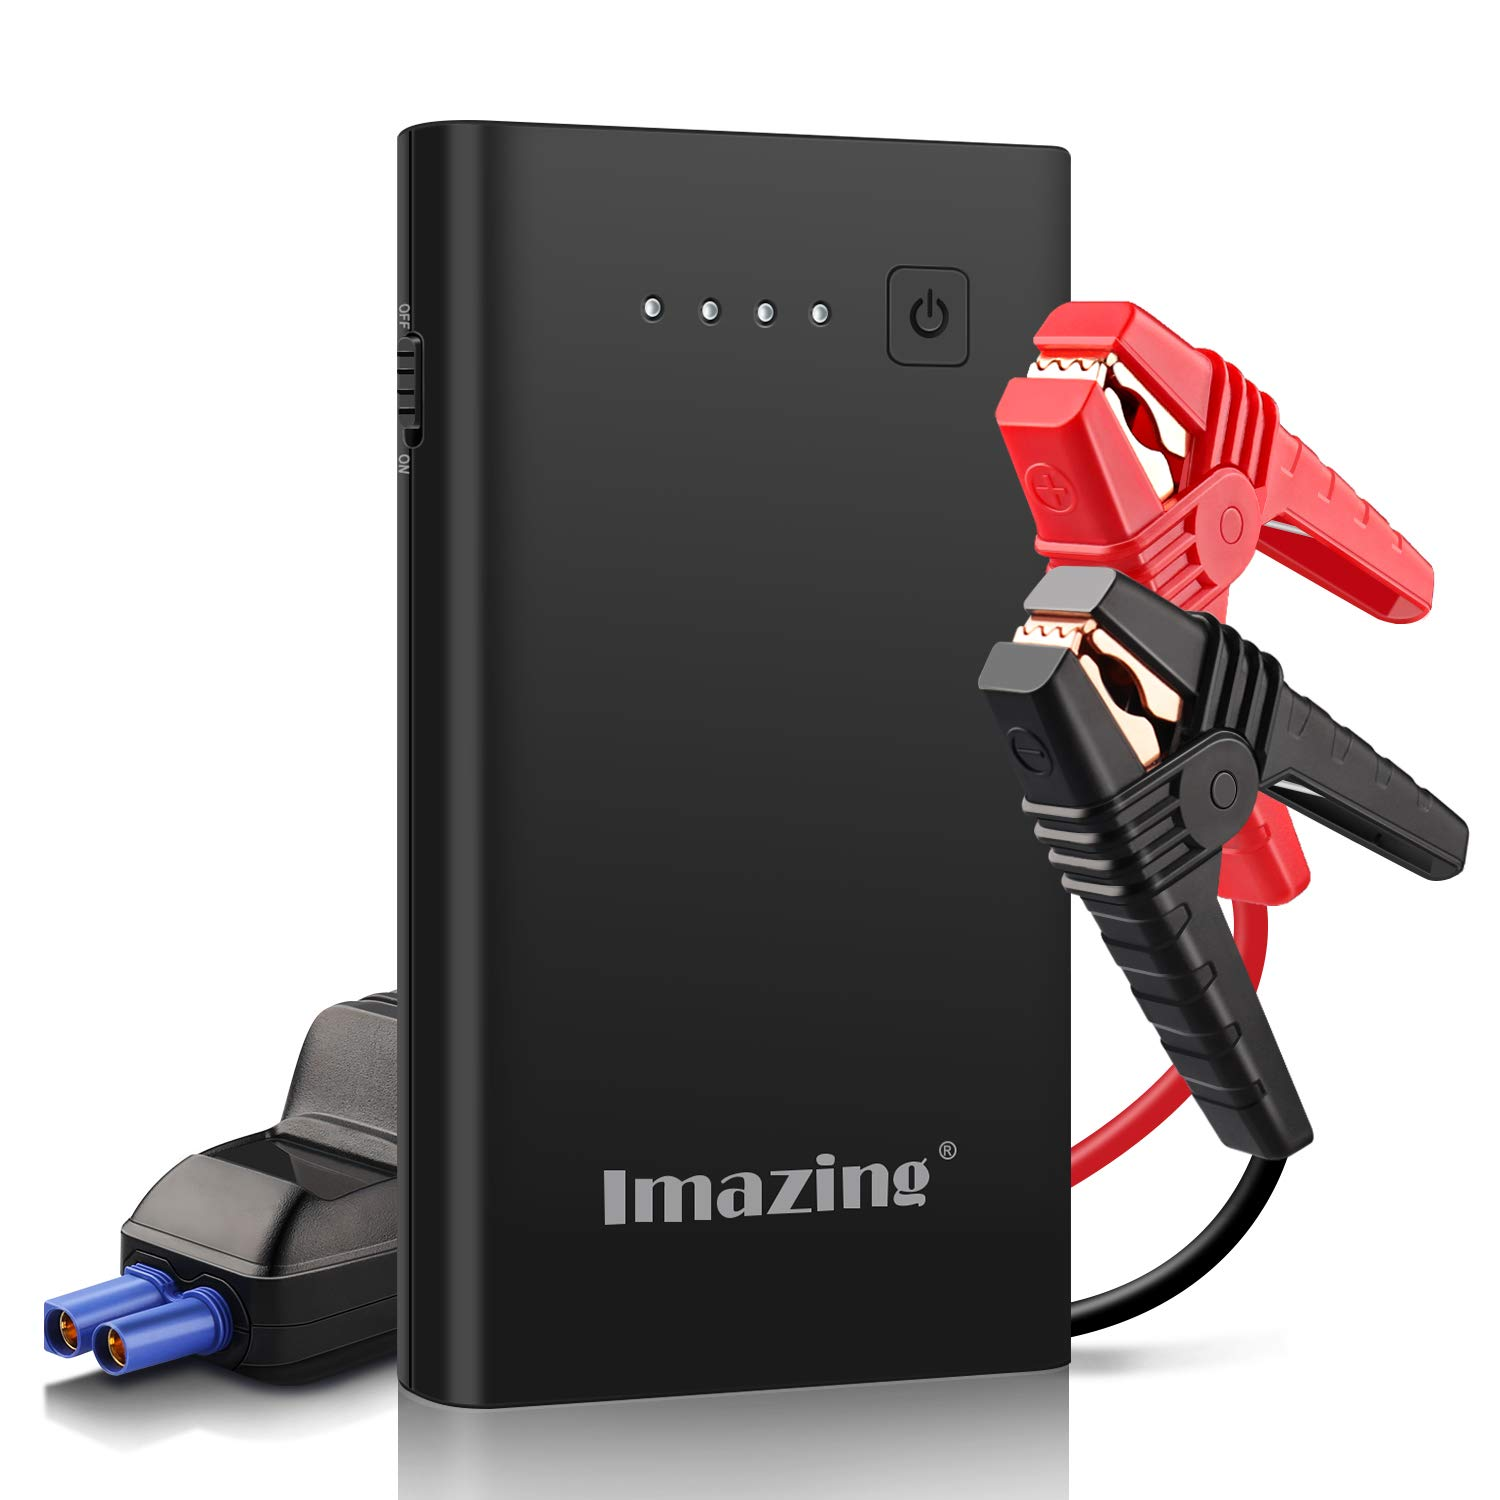 Imazing Car Jump Starter 1000A Peak 8000mAh with Type-C Port(Up to 7.0L Gas or 5.5L Diesel Engine), 12V Portable Power Pack Auto Battery Booster with LCD Display Jumper Cables, QC 3.0 and LED Light by Imazing (Image #1)